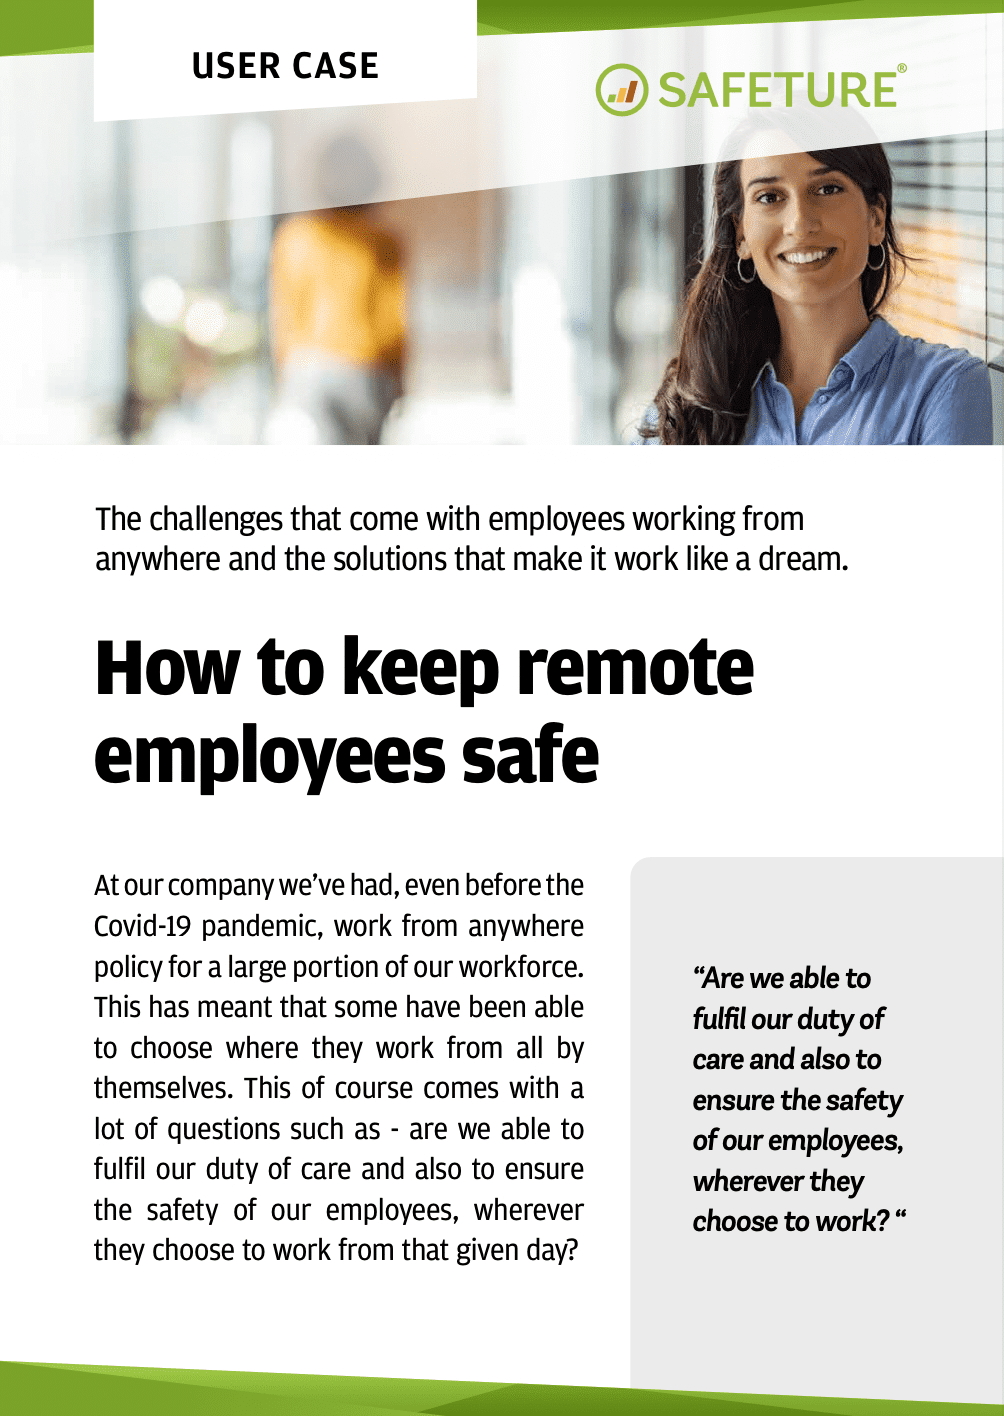 remote employees